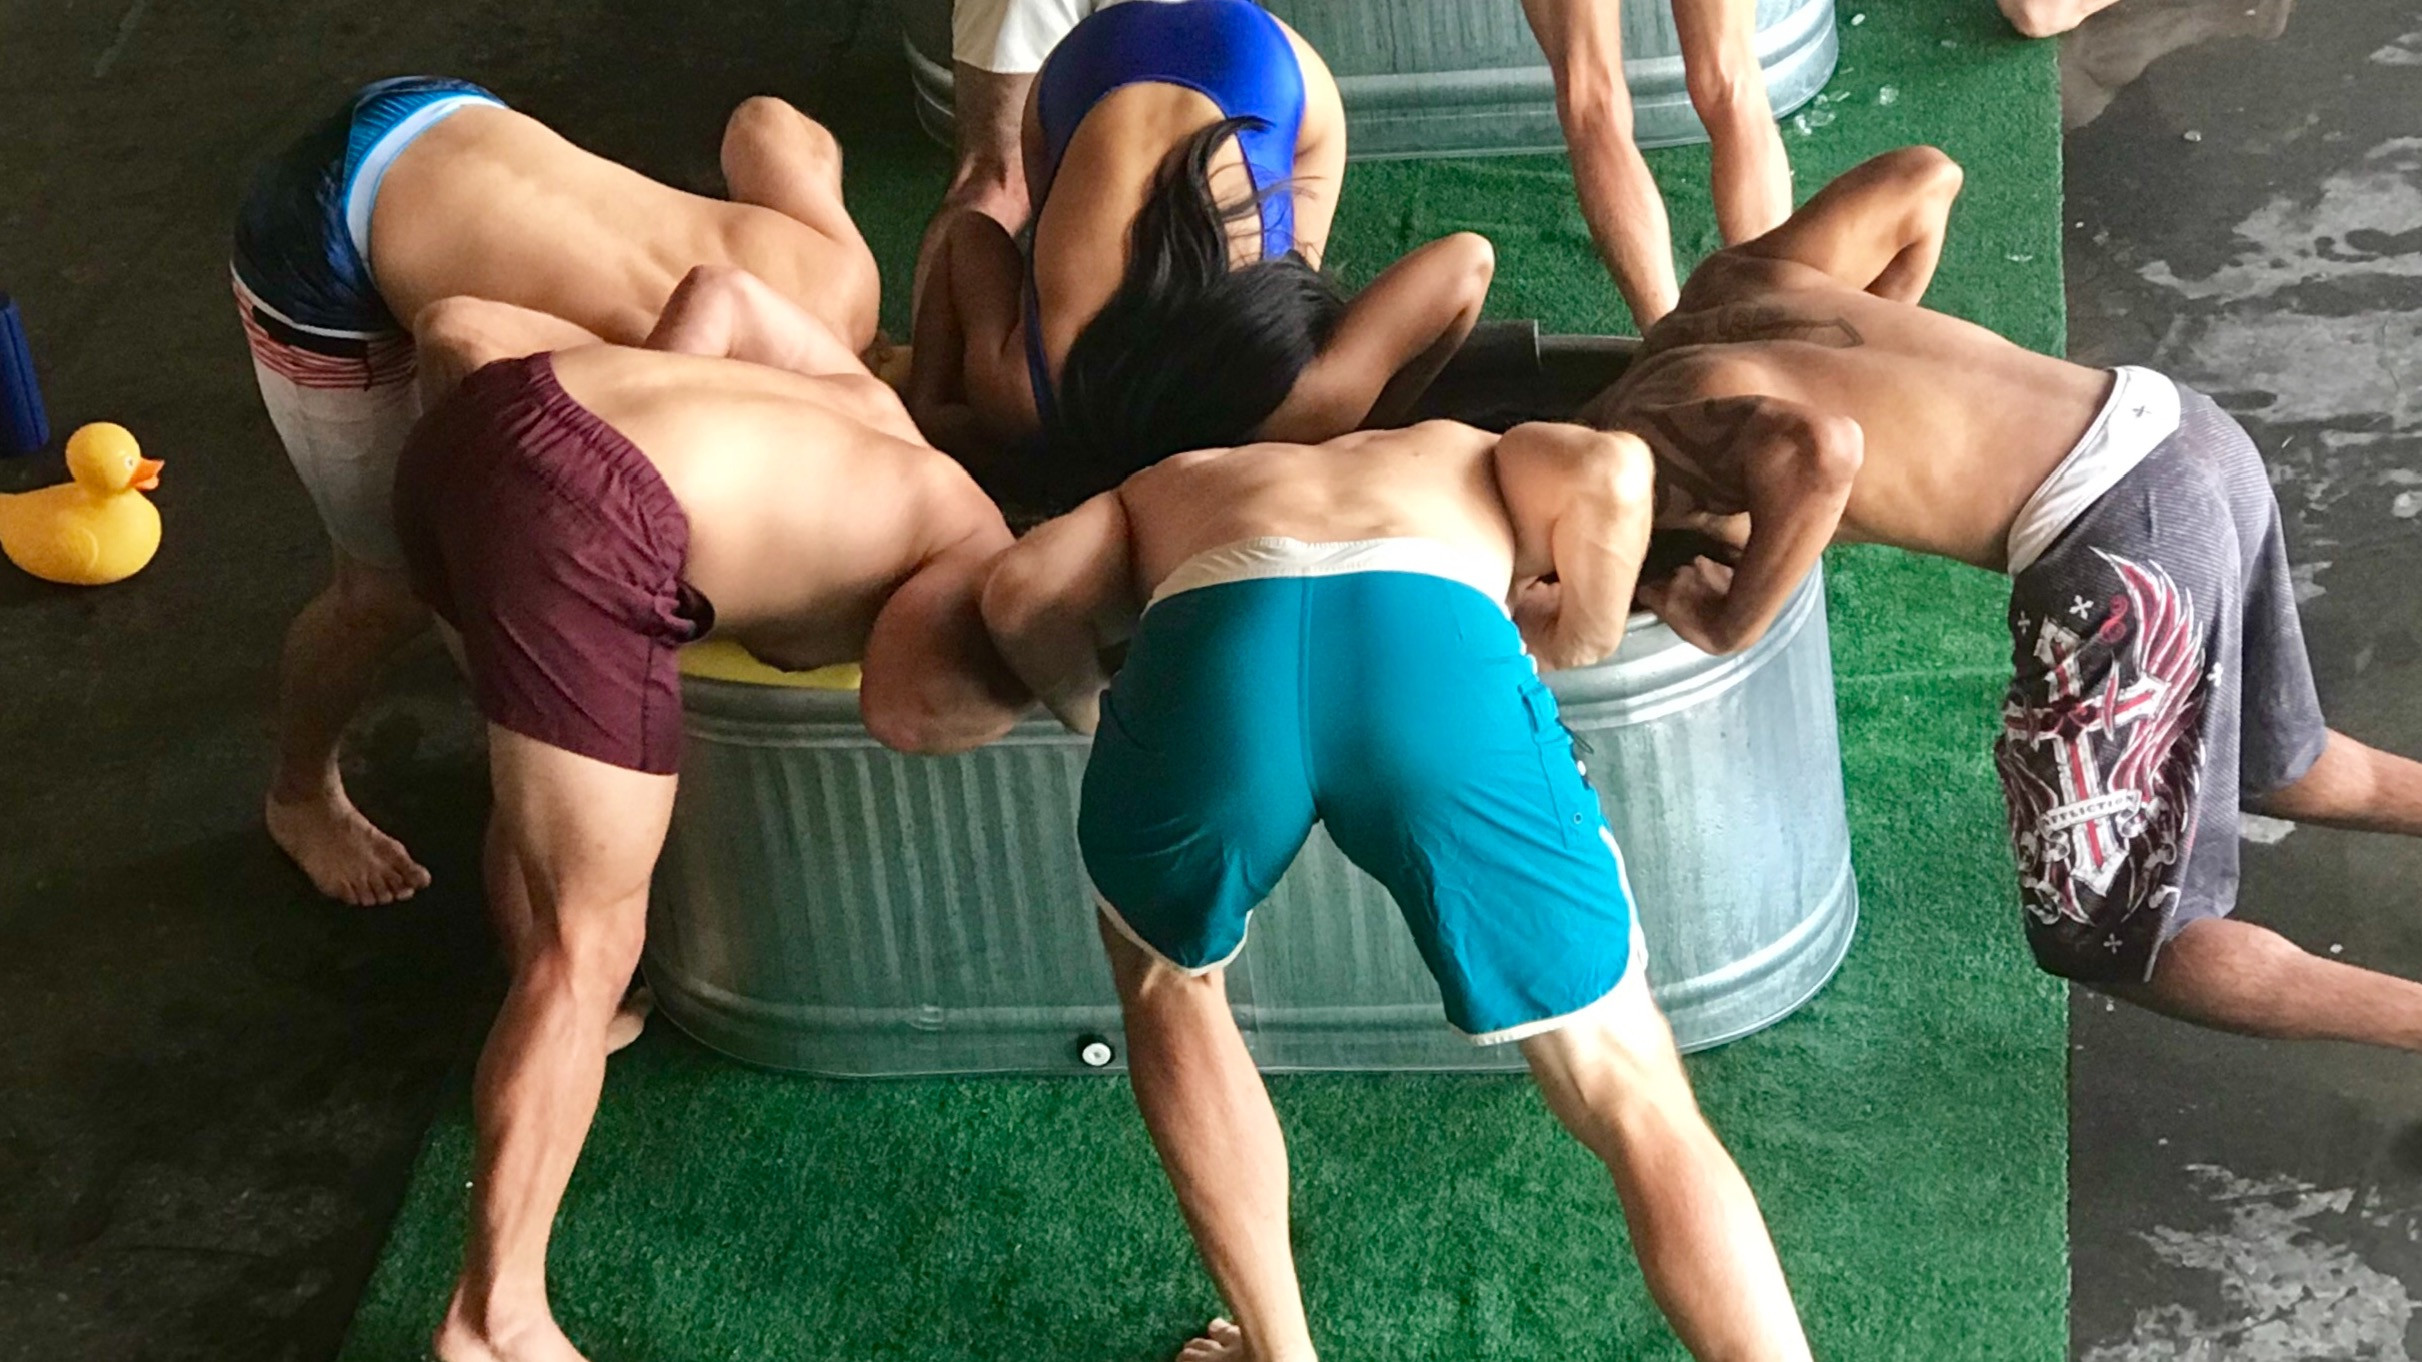 Image 3 of 6 - Experience the Wim Hof Method to get an impression of  at